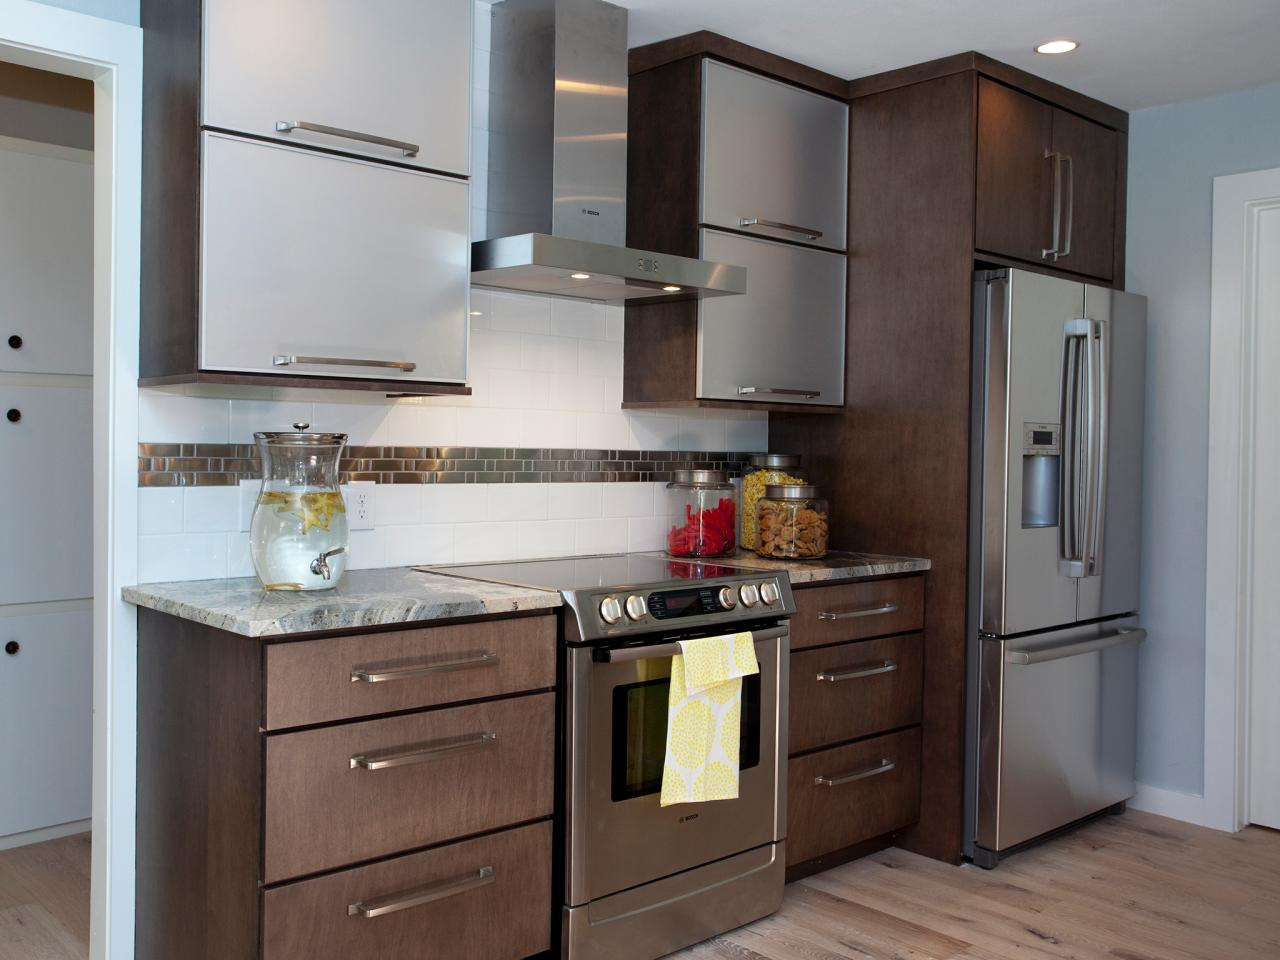 Stainless Steel Kitchen Cabinet Doors Refinishing Kitchen Cabinet Ideas Pictures & Tips From Hgtv  Hgtv